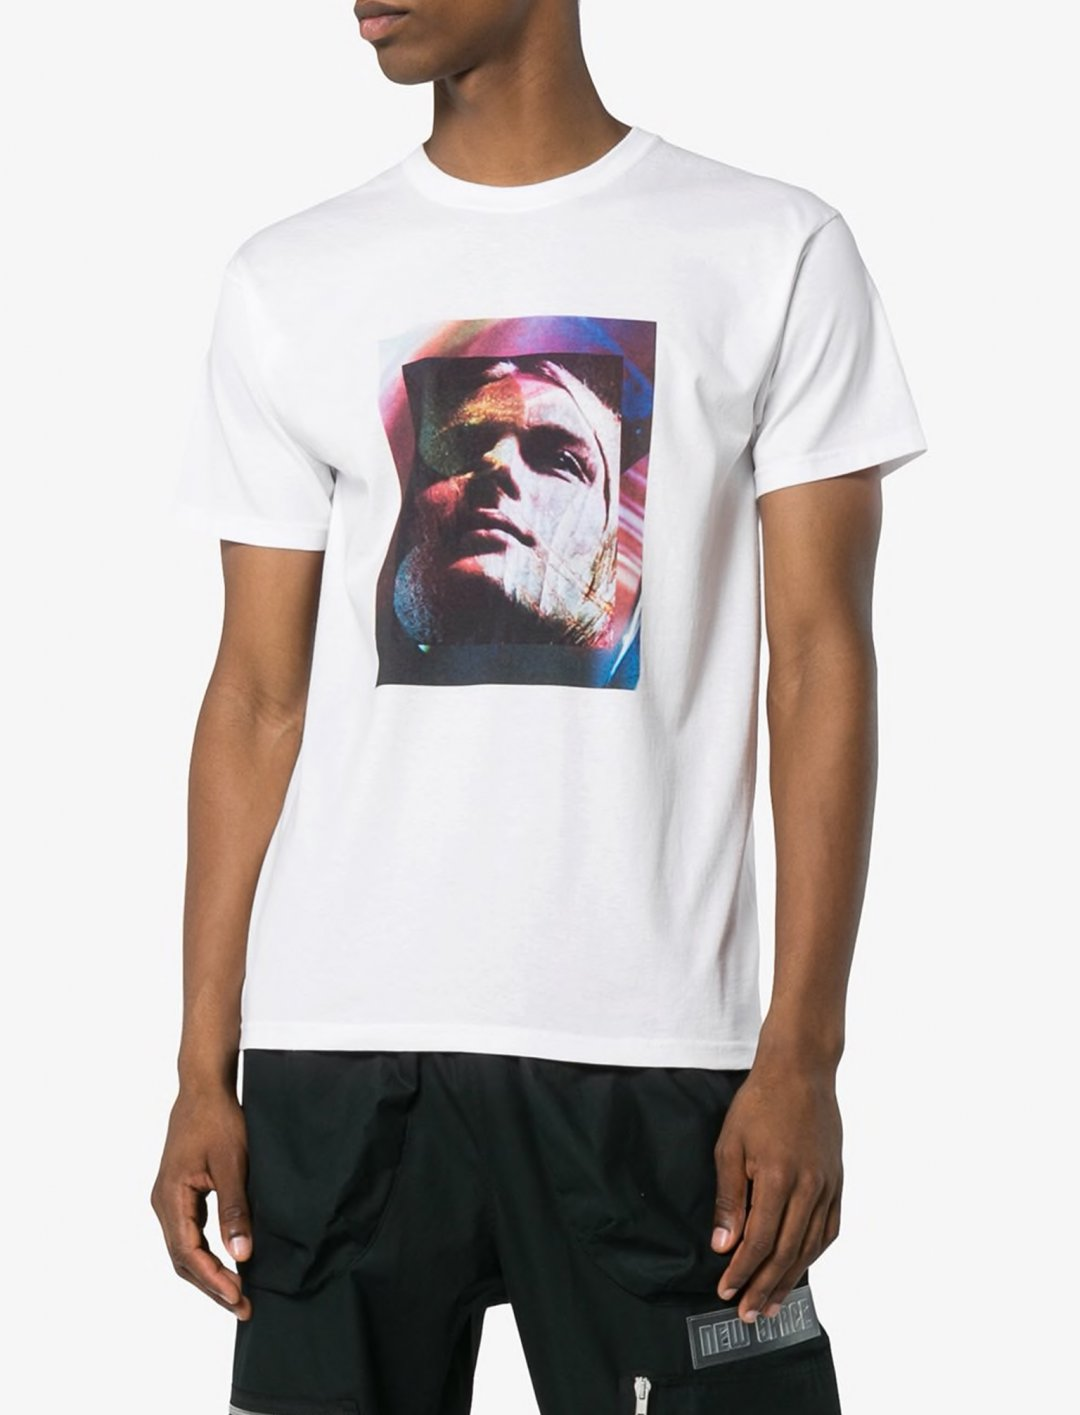 """Gareth McConnell Dreamscape T-Shirt {""""id"""":5,""""product_section_id"""":1,""""name"""":""""Clothing"""",""""order"""":5} Just A T-Shirt"""